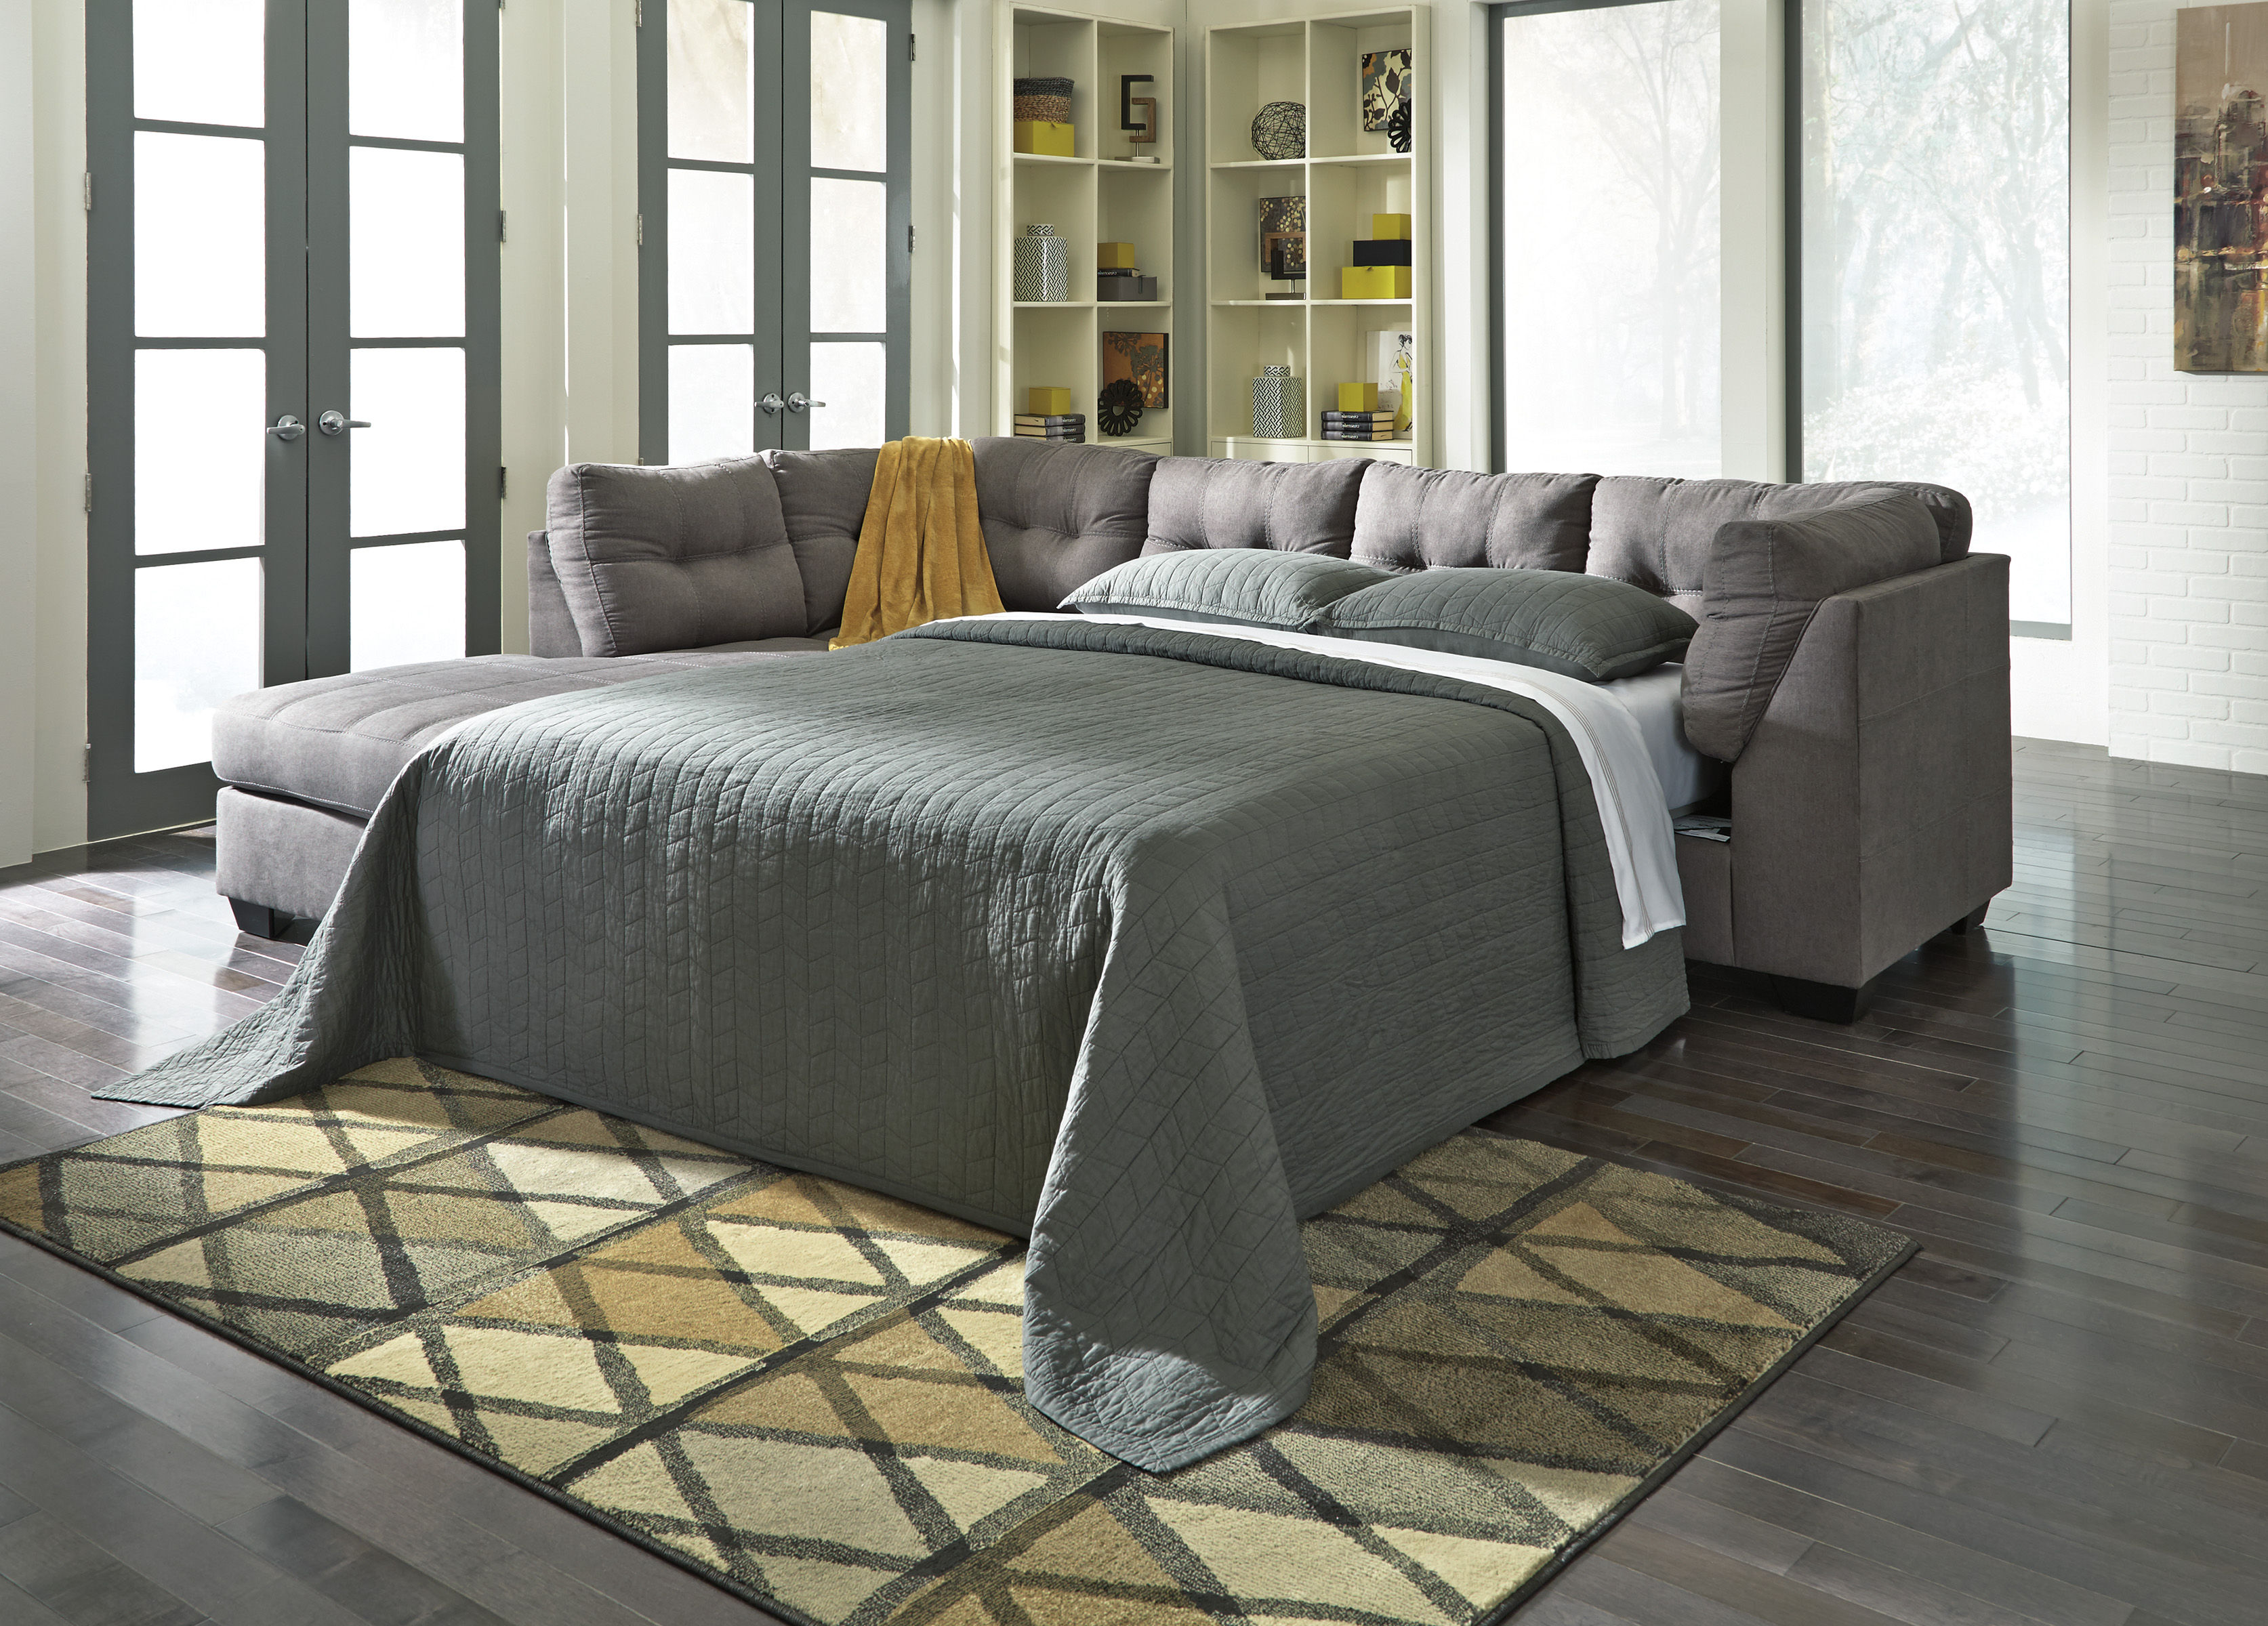 home bed right contemporary lsg furniture boulevard item collections loric chaise sectional smoke piece with ashley furnishings sofa